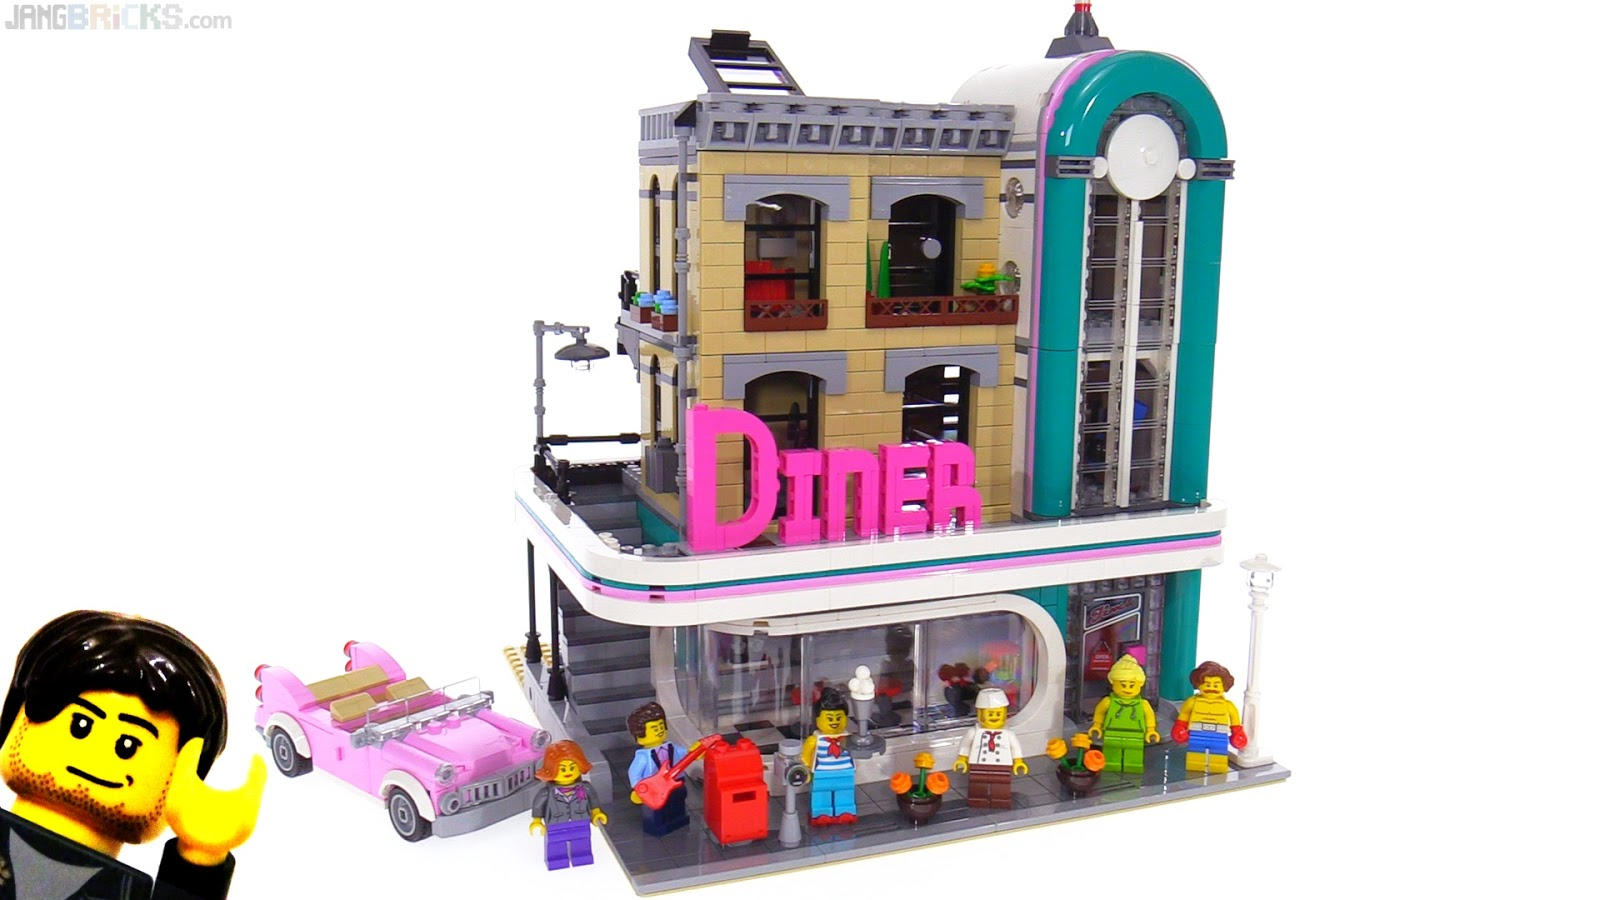 lego creator downtown diner 10260 review. Black Bedroom Furniture Sets. Home Design Ideas